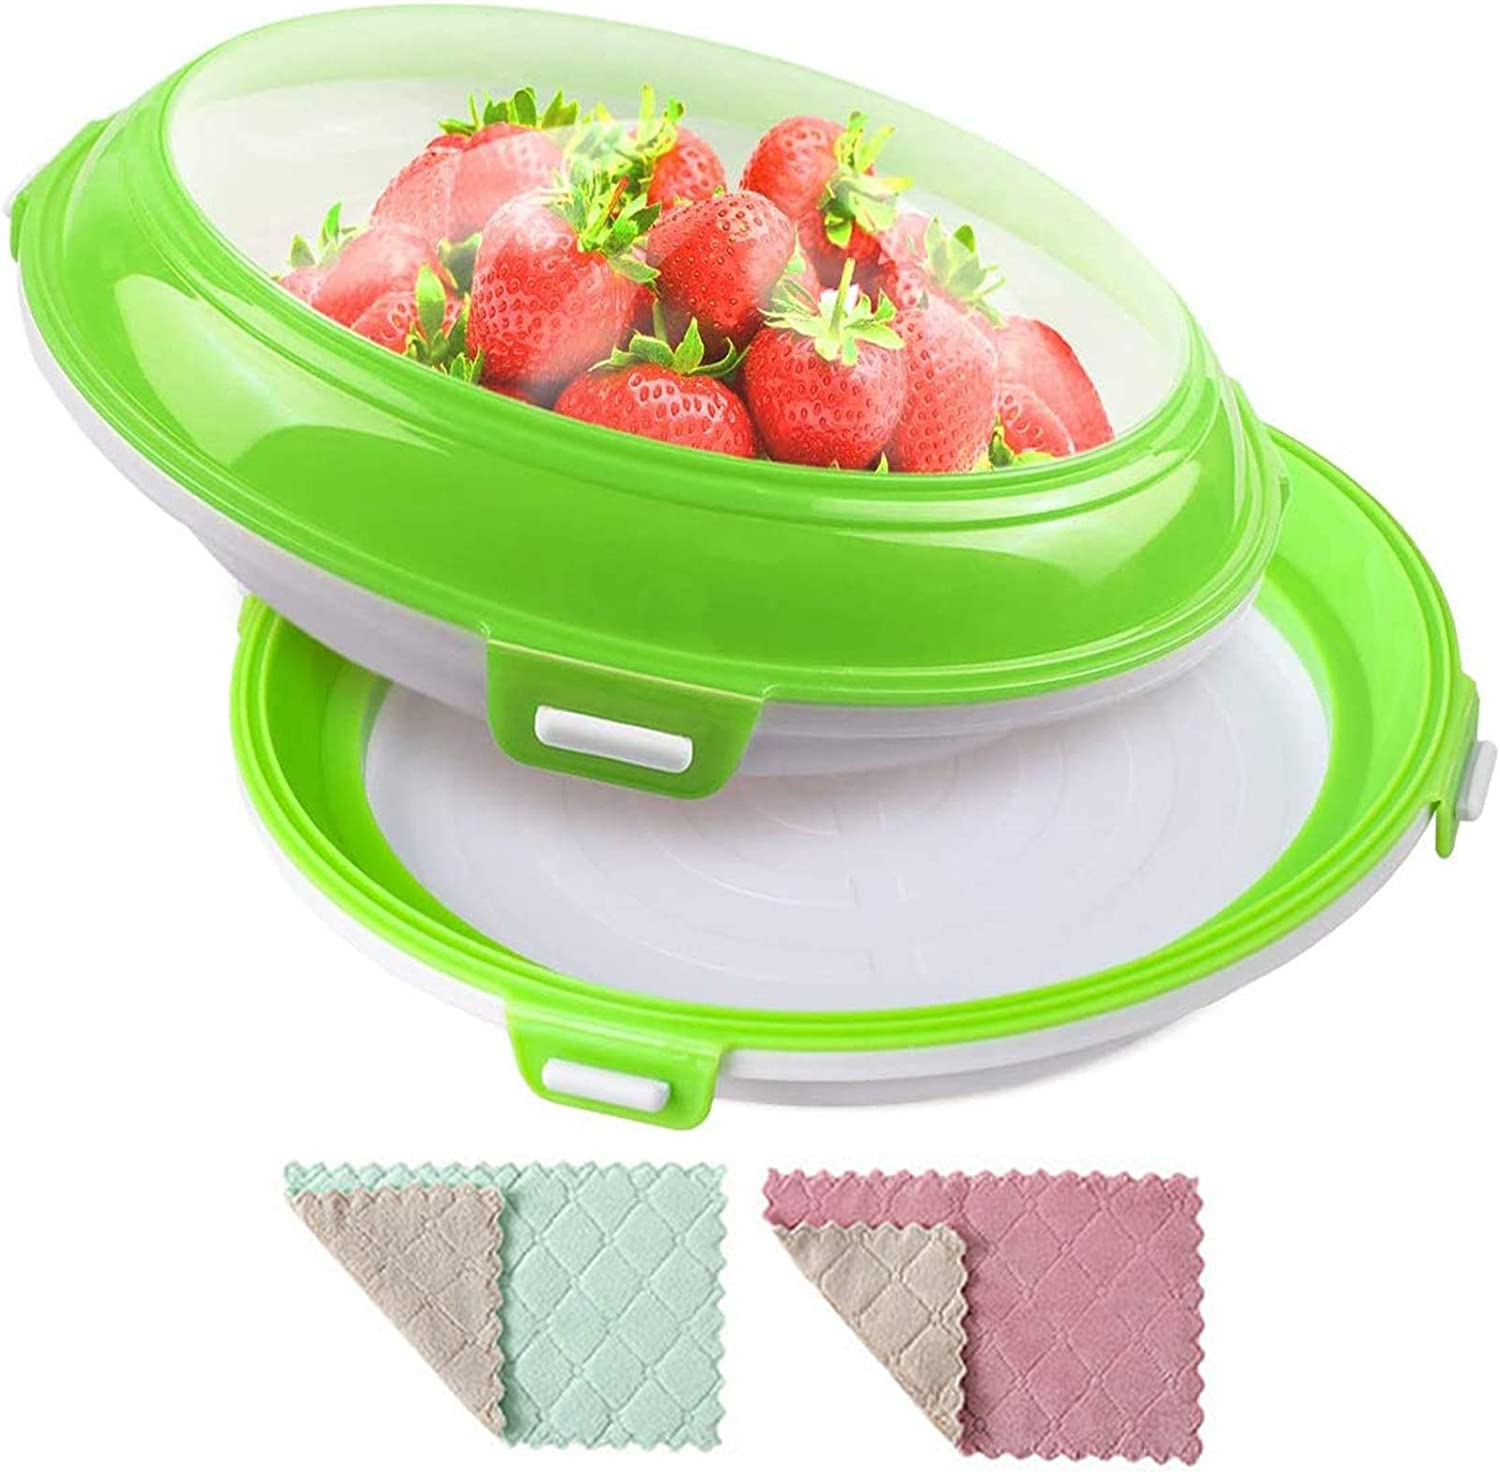 Food preservation trays perfect trays food storage stackable reusable refrigerator and freezer plastic food trays 2 pieces 2 free towels(Green)